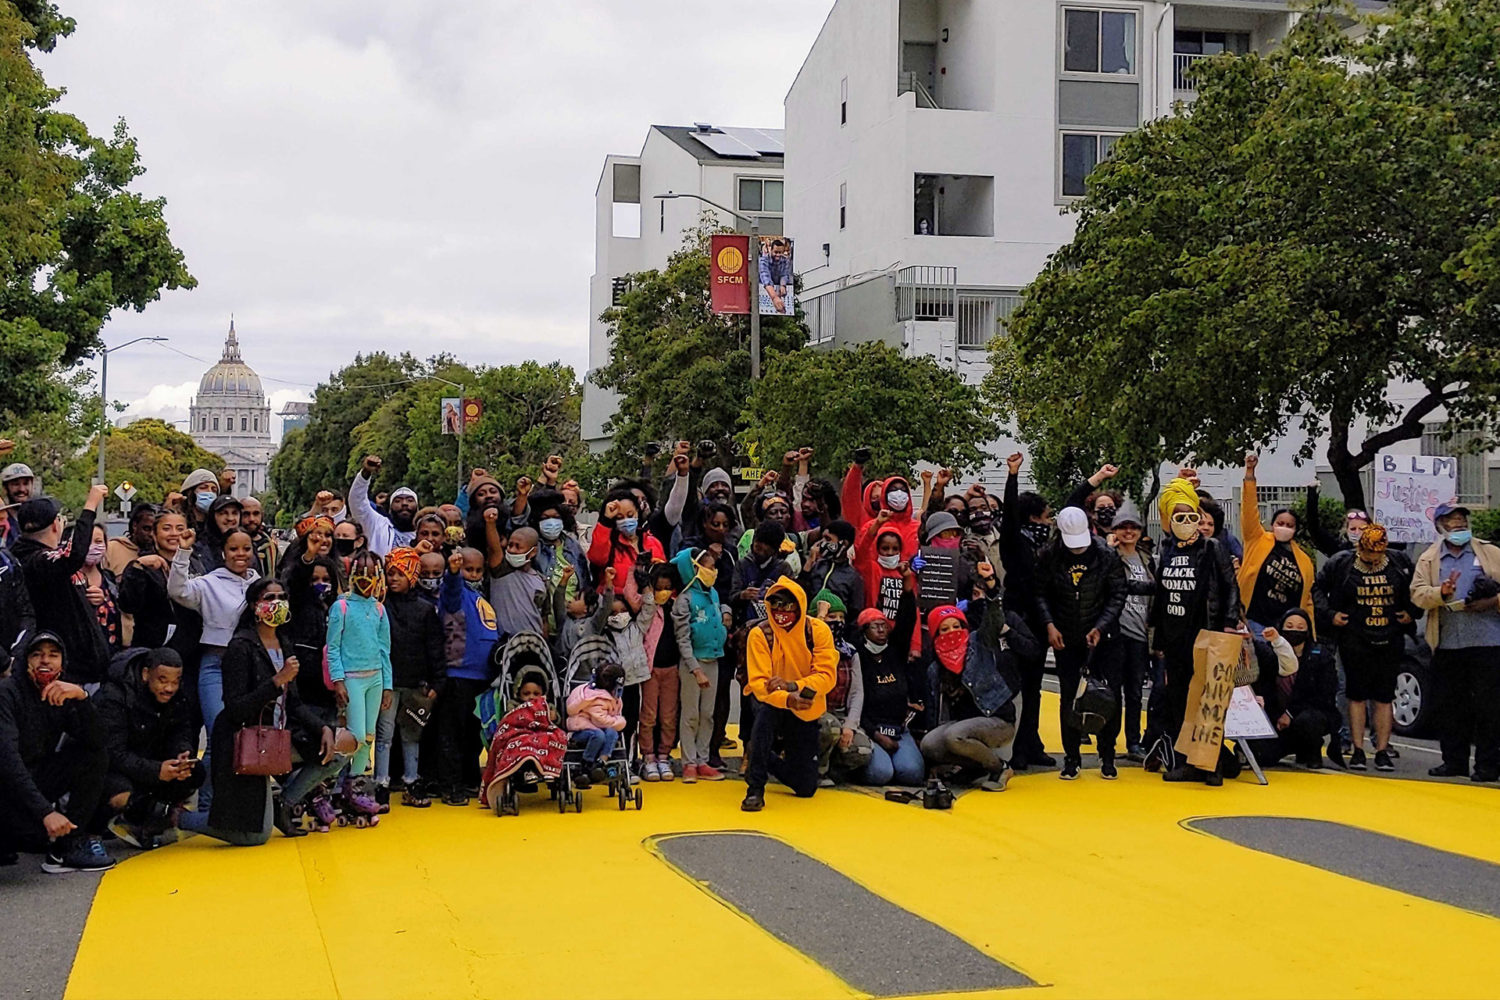 MegaBlack SF: Black leaders tell Mayor Breed how to transfer police funds to the Black community